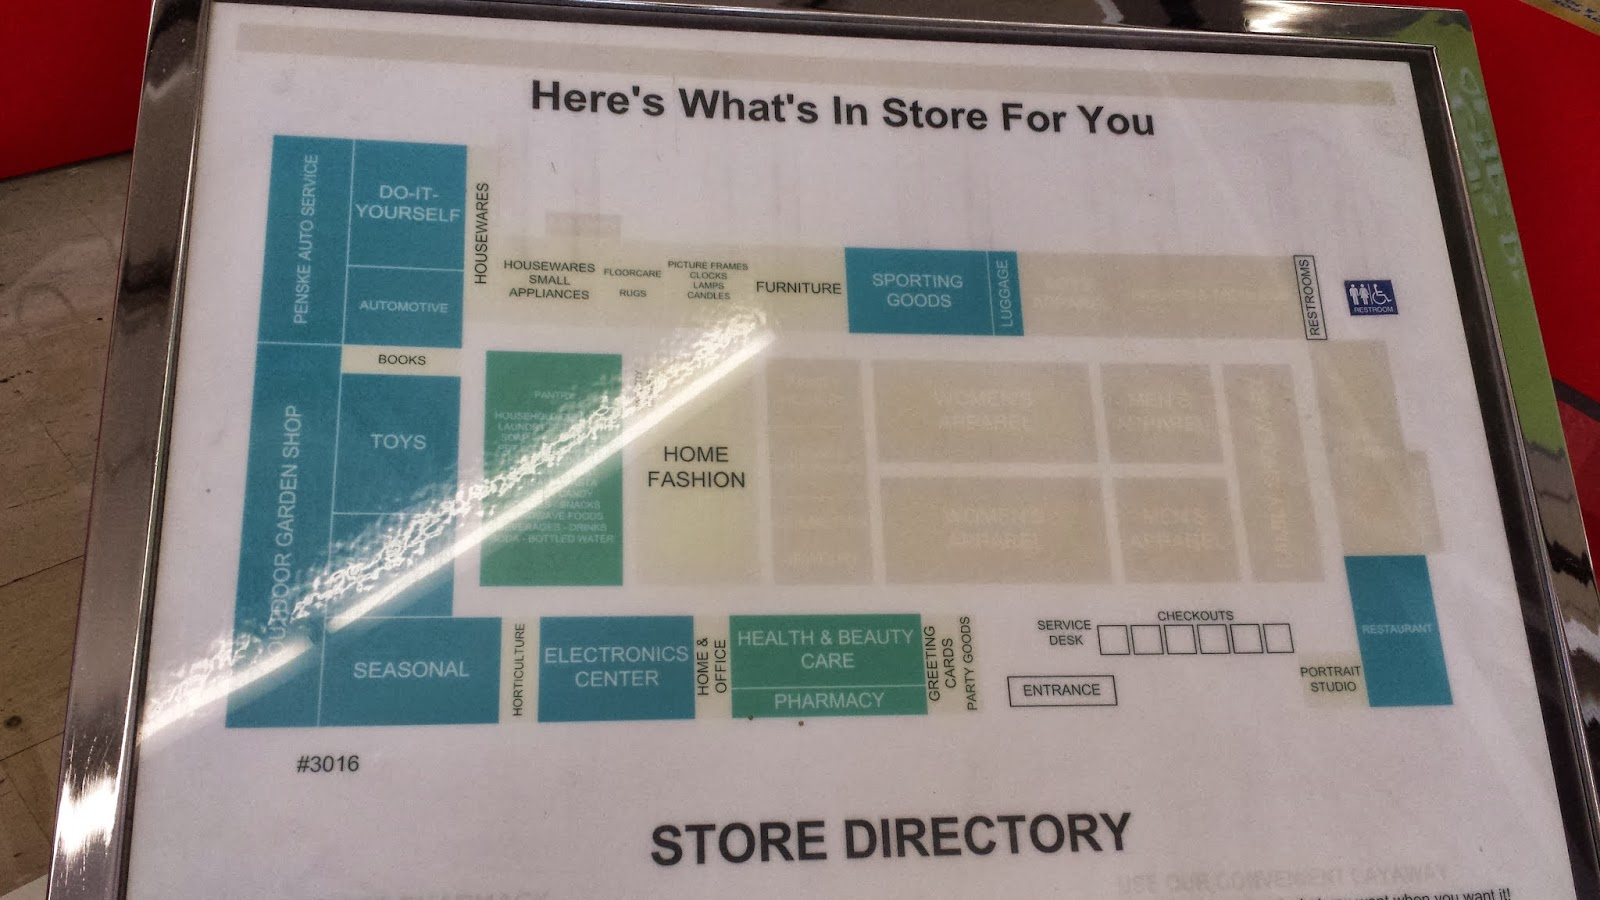 Louisiana and texas southern malls and retail kmart bossier city la kmart bossier city la gumiabroncs Gallery